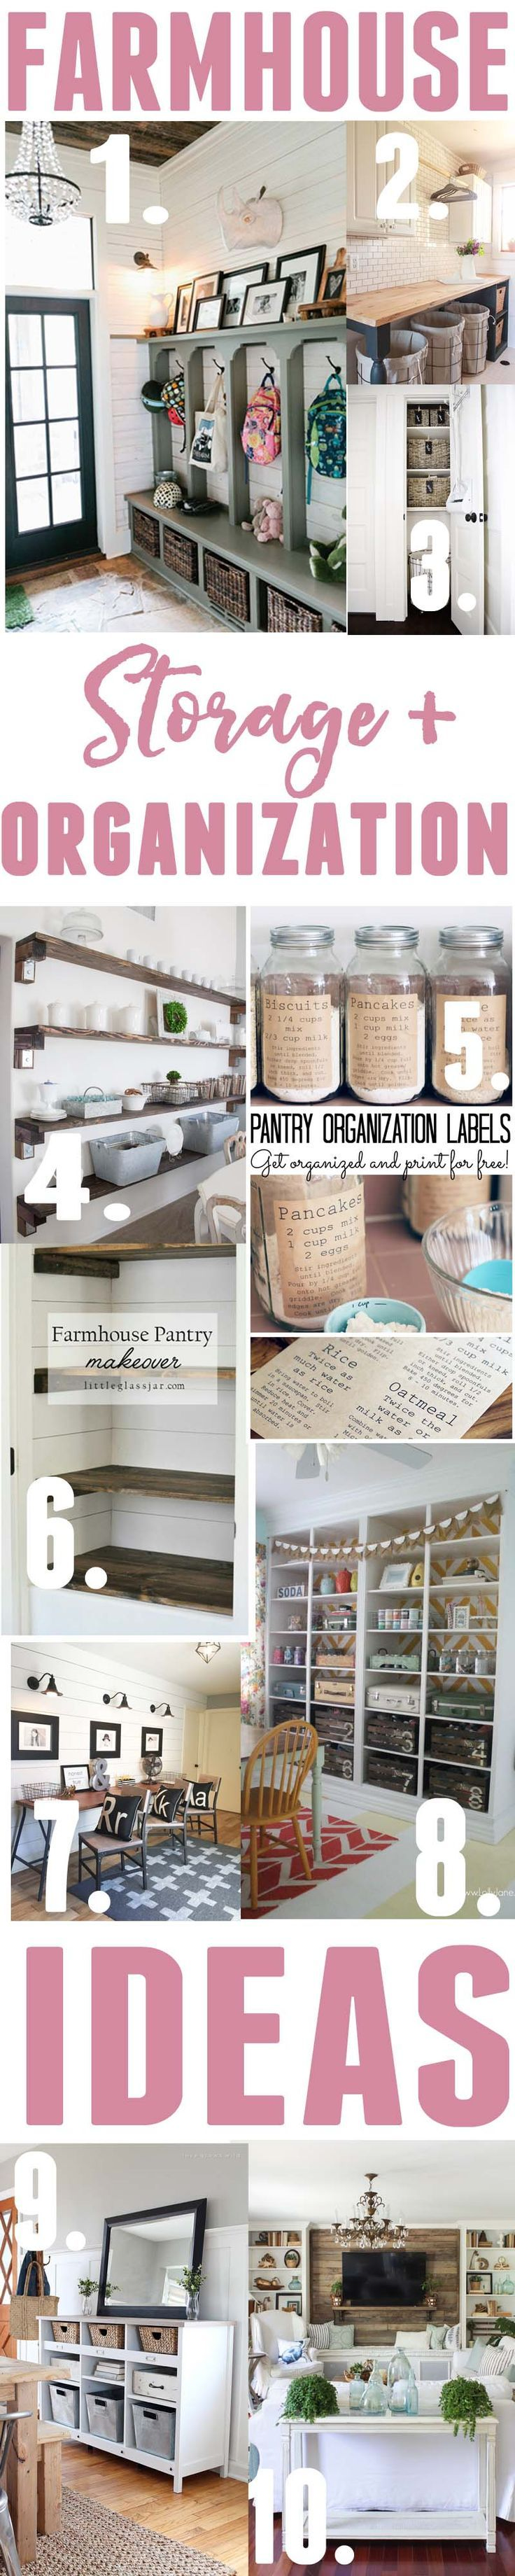 Farmhouse Storage and organization ideas; 10 projects featuring farmhouse…